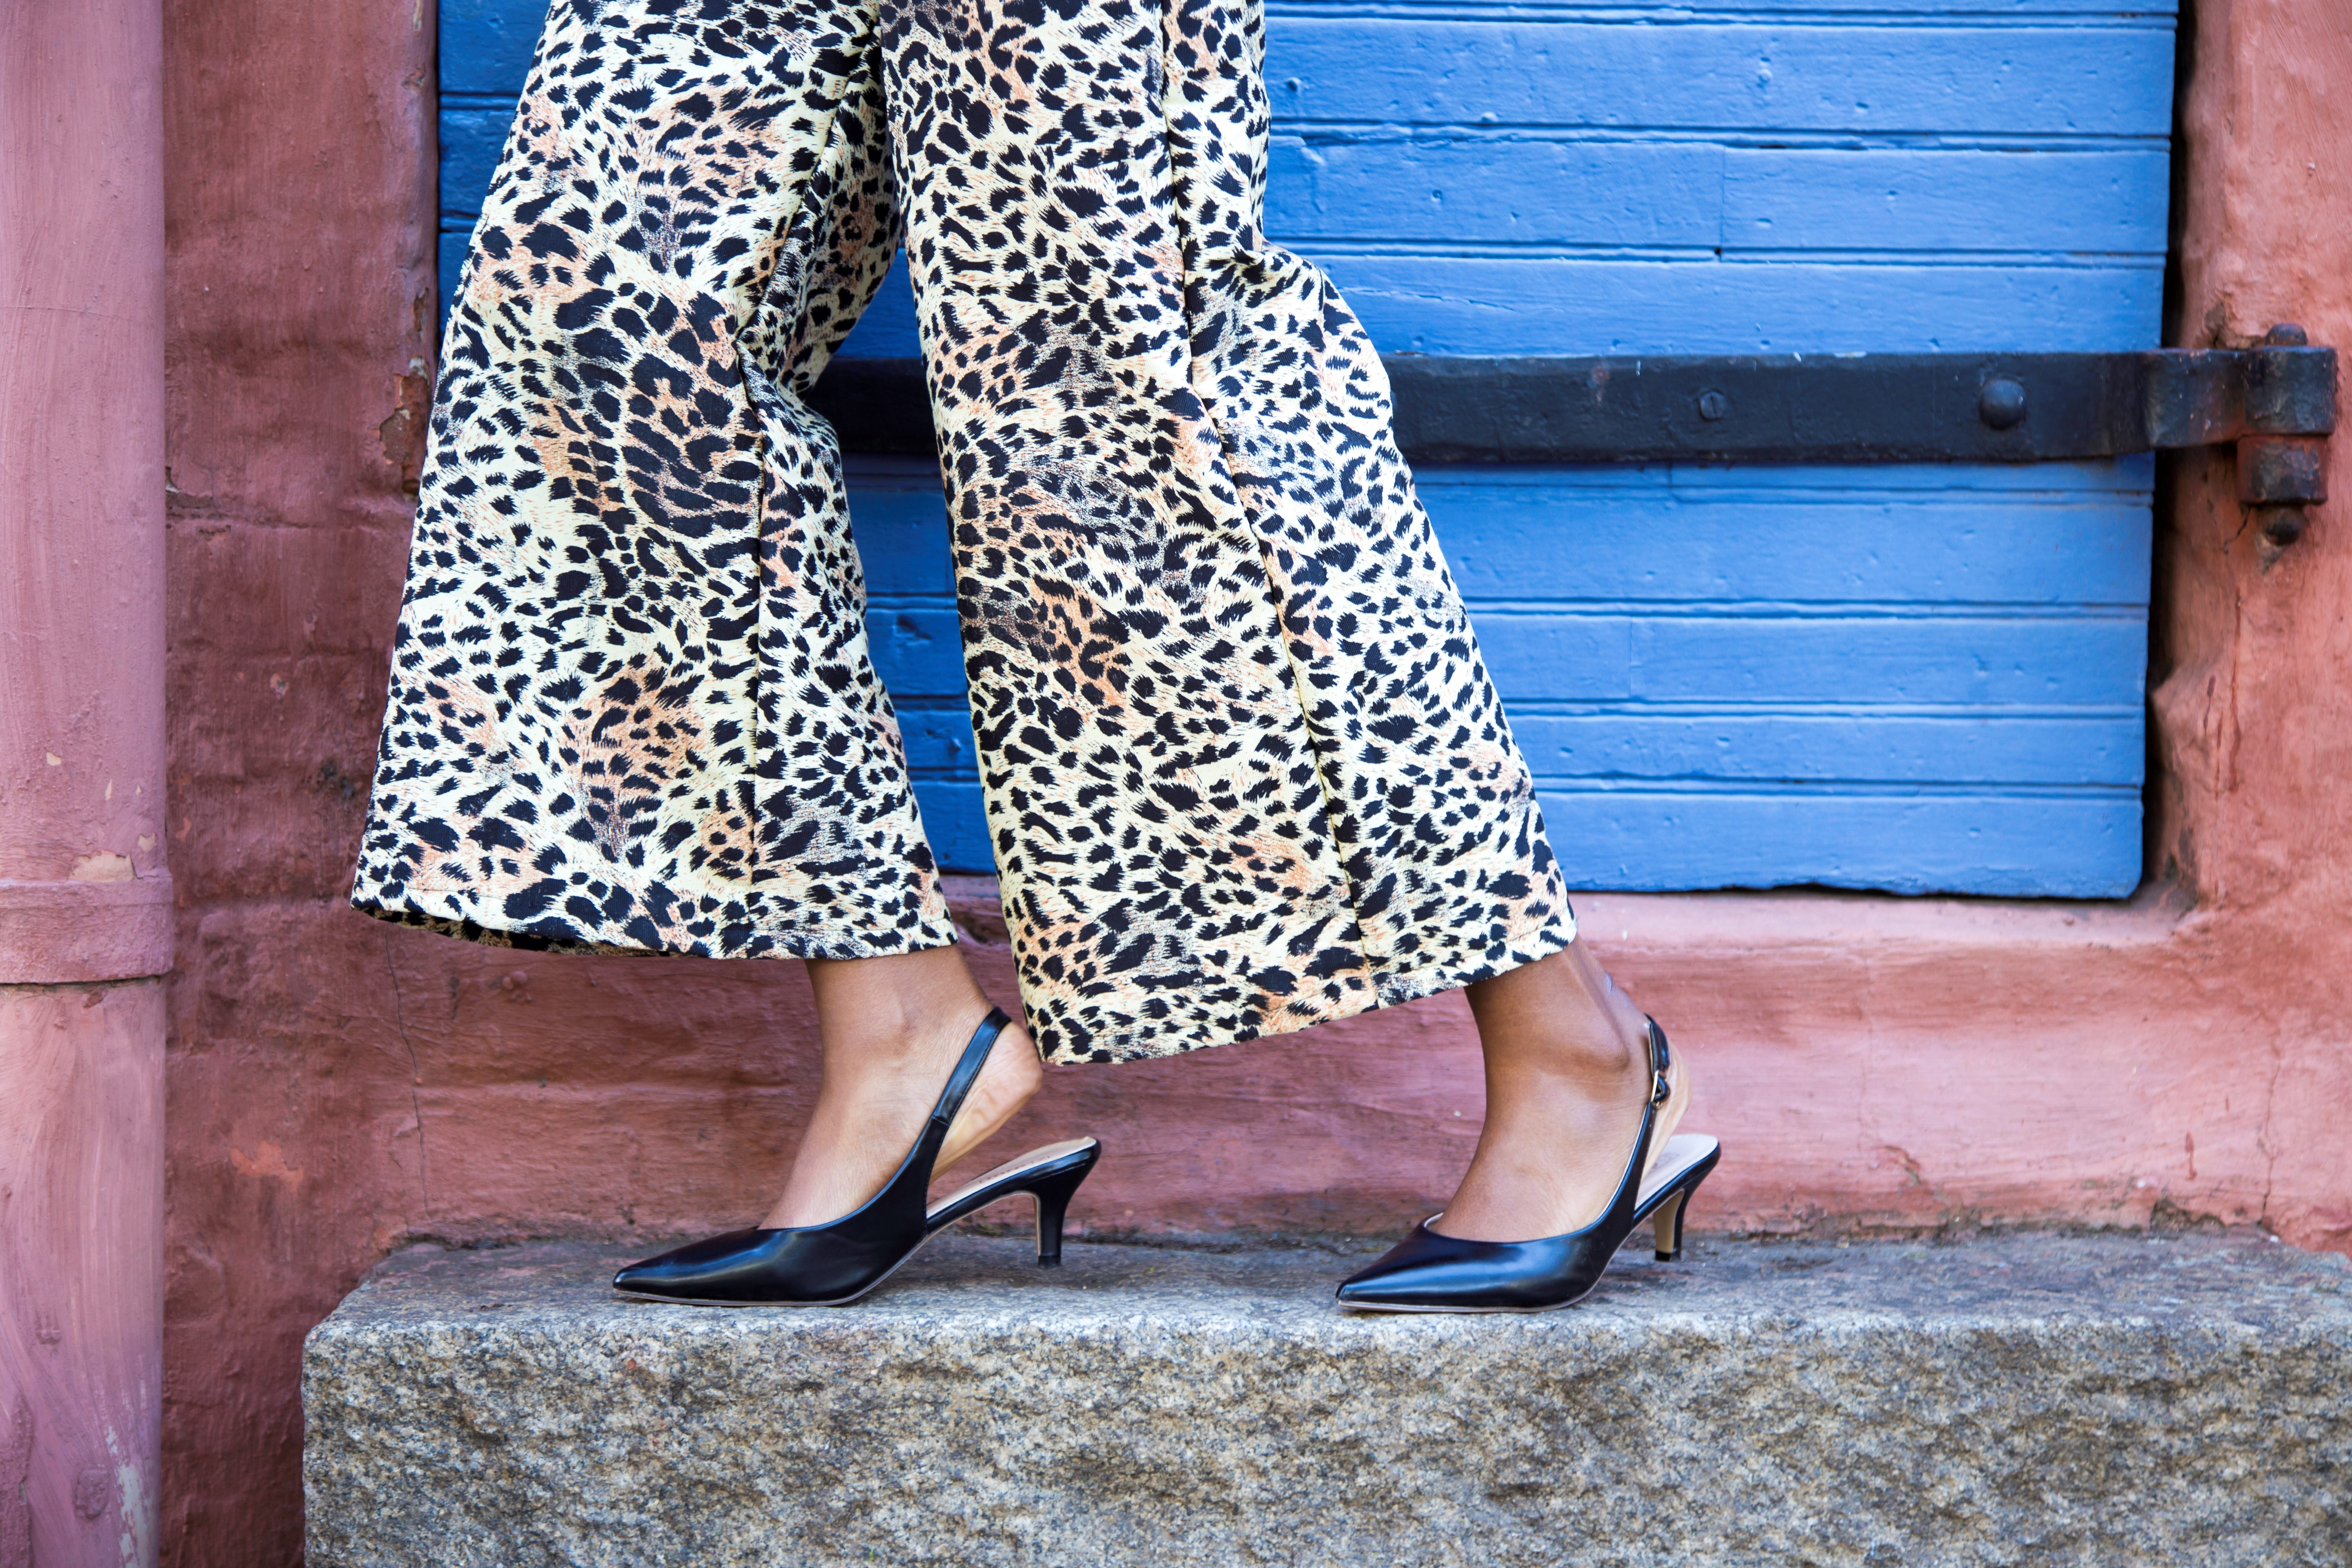 StyleTech by Teshie is Set to Launch an Entire Animal Print Collection